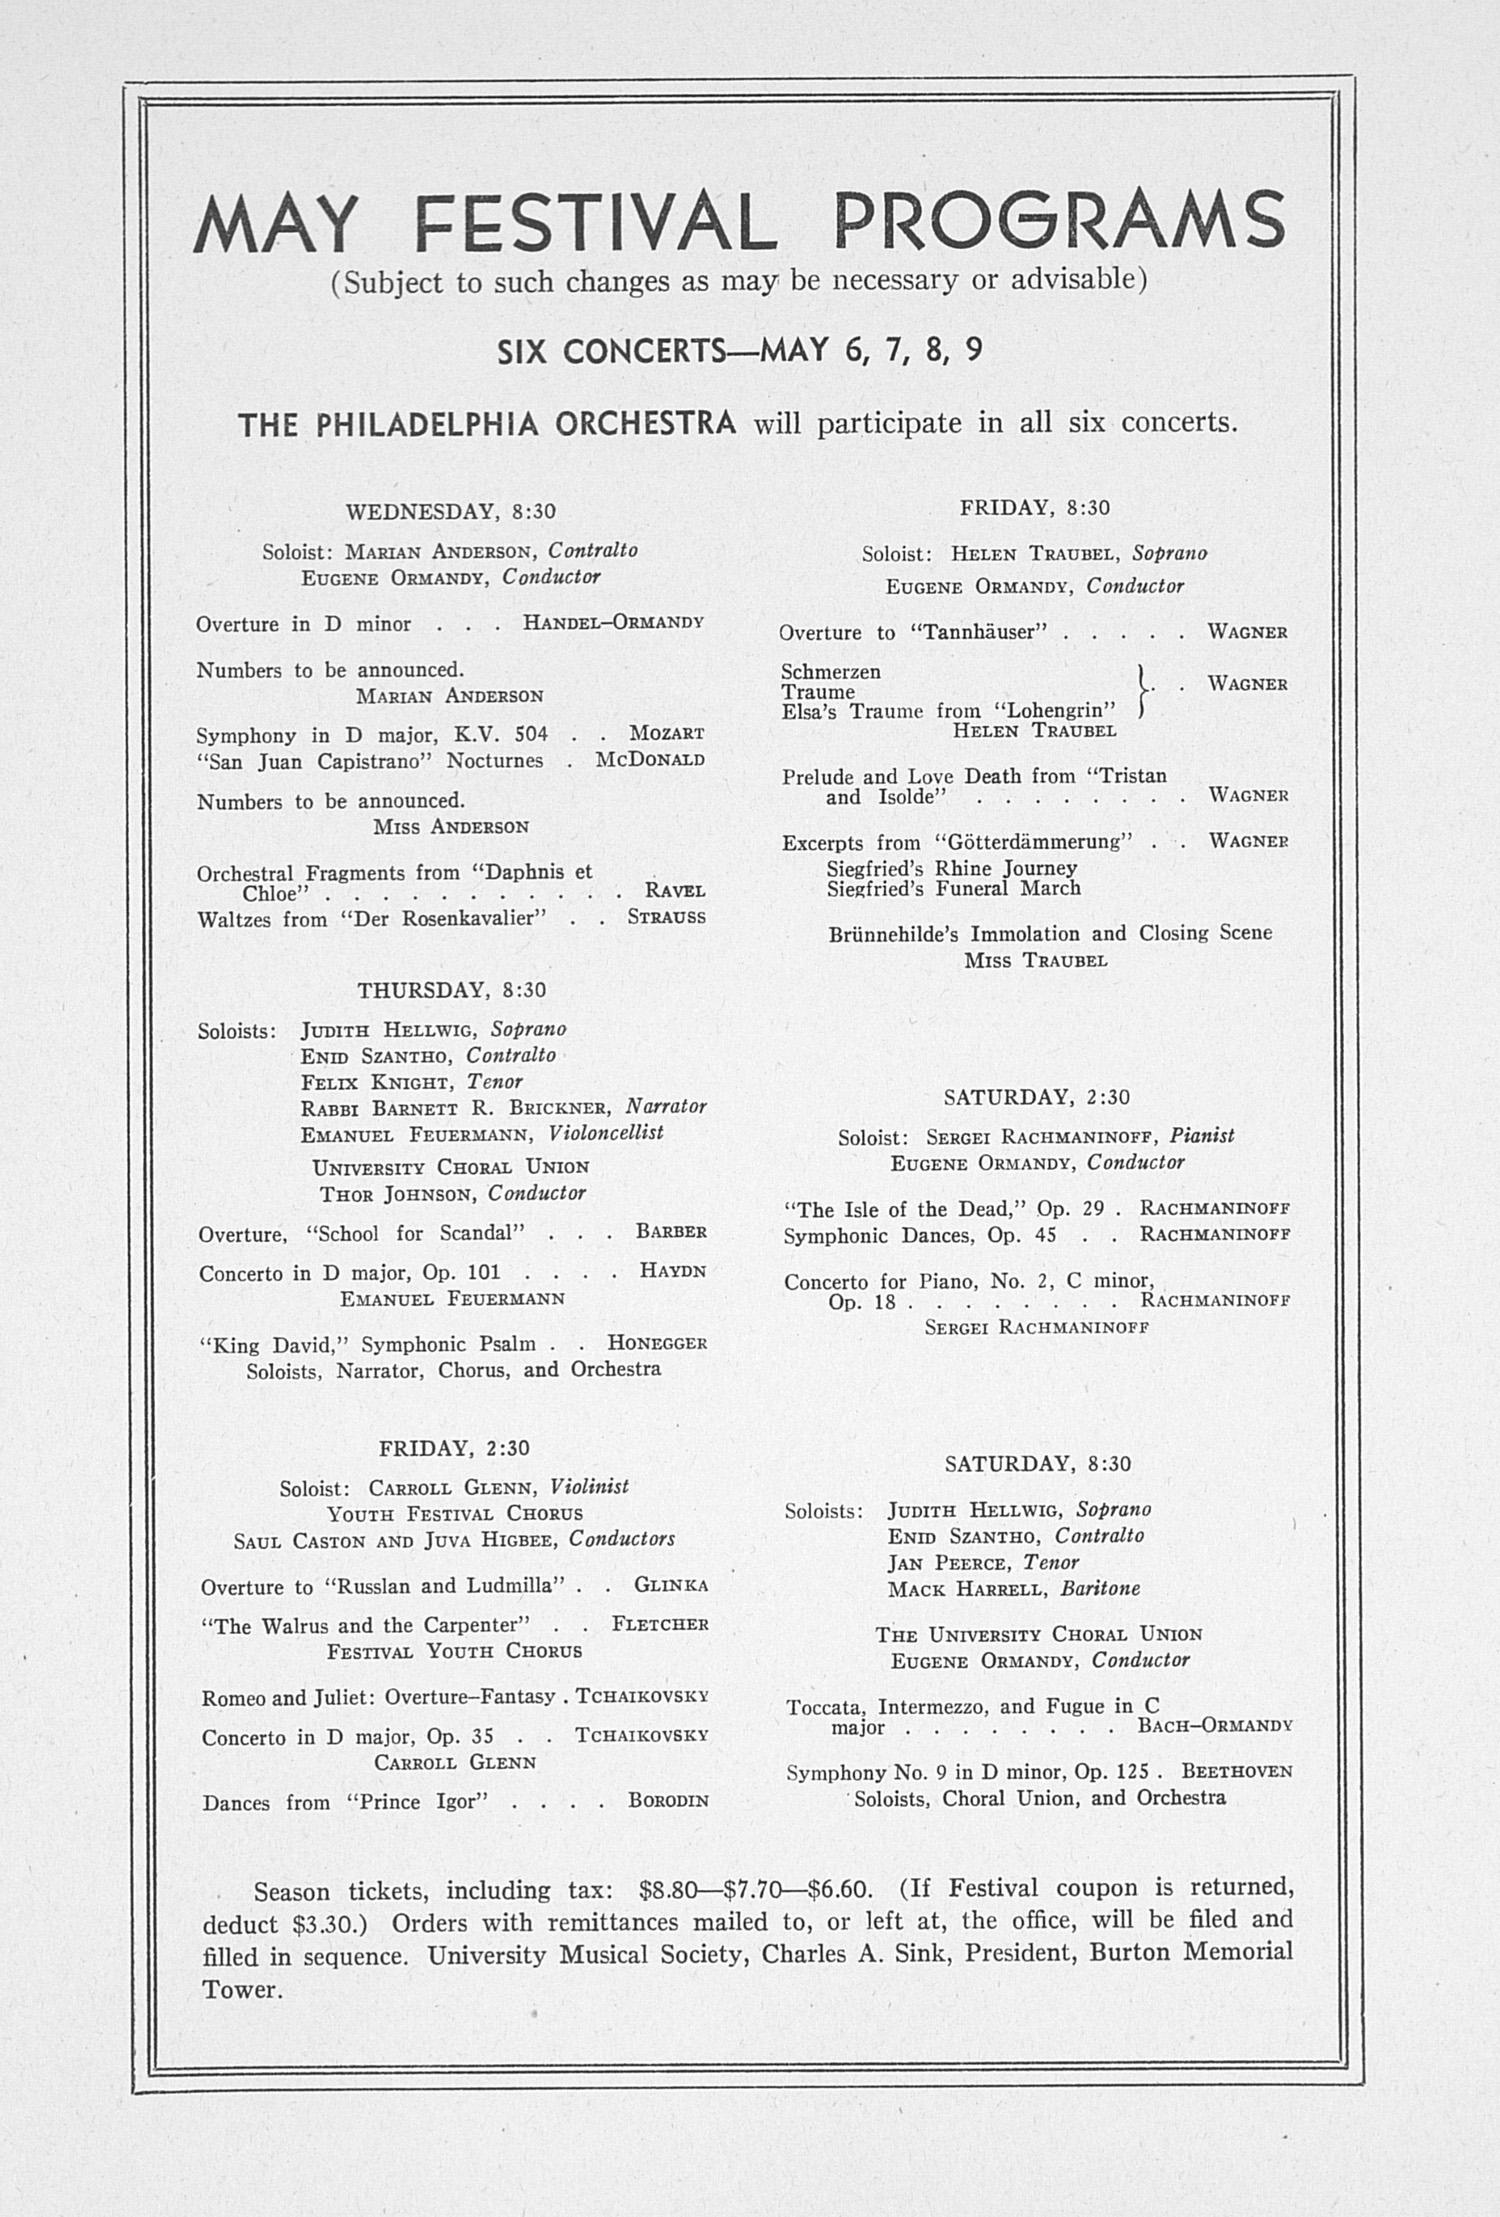 UMS Concert Program, March 3, 1942: Sixty-third Annual Choral Union Concert Series -- Vitya Vronsky image